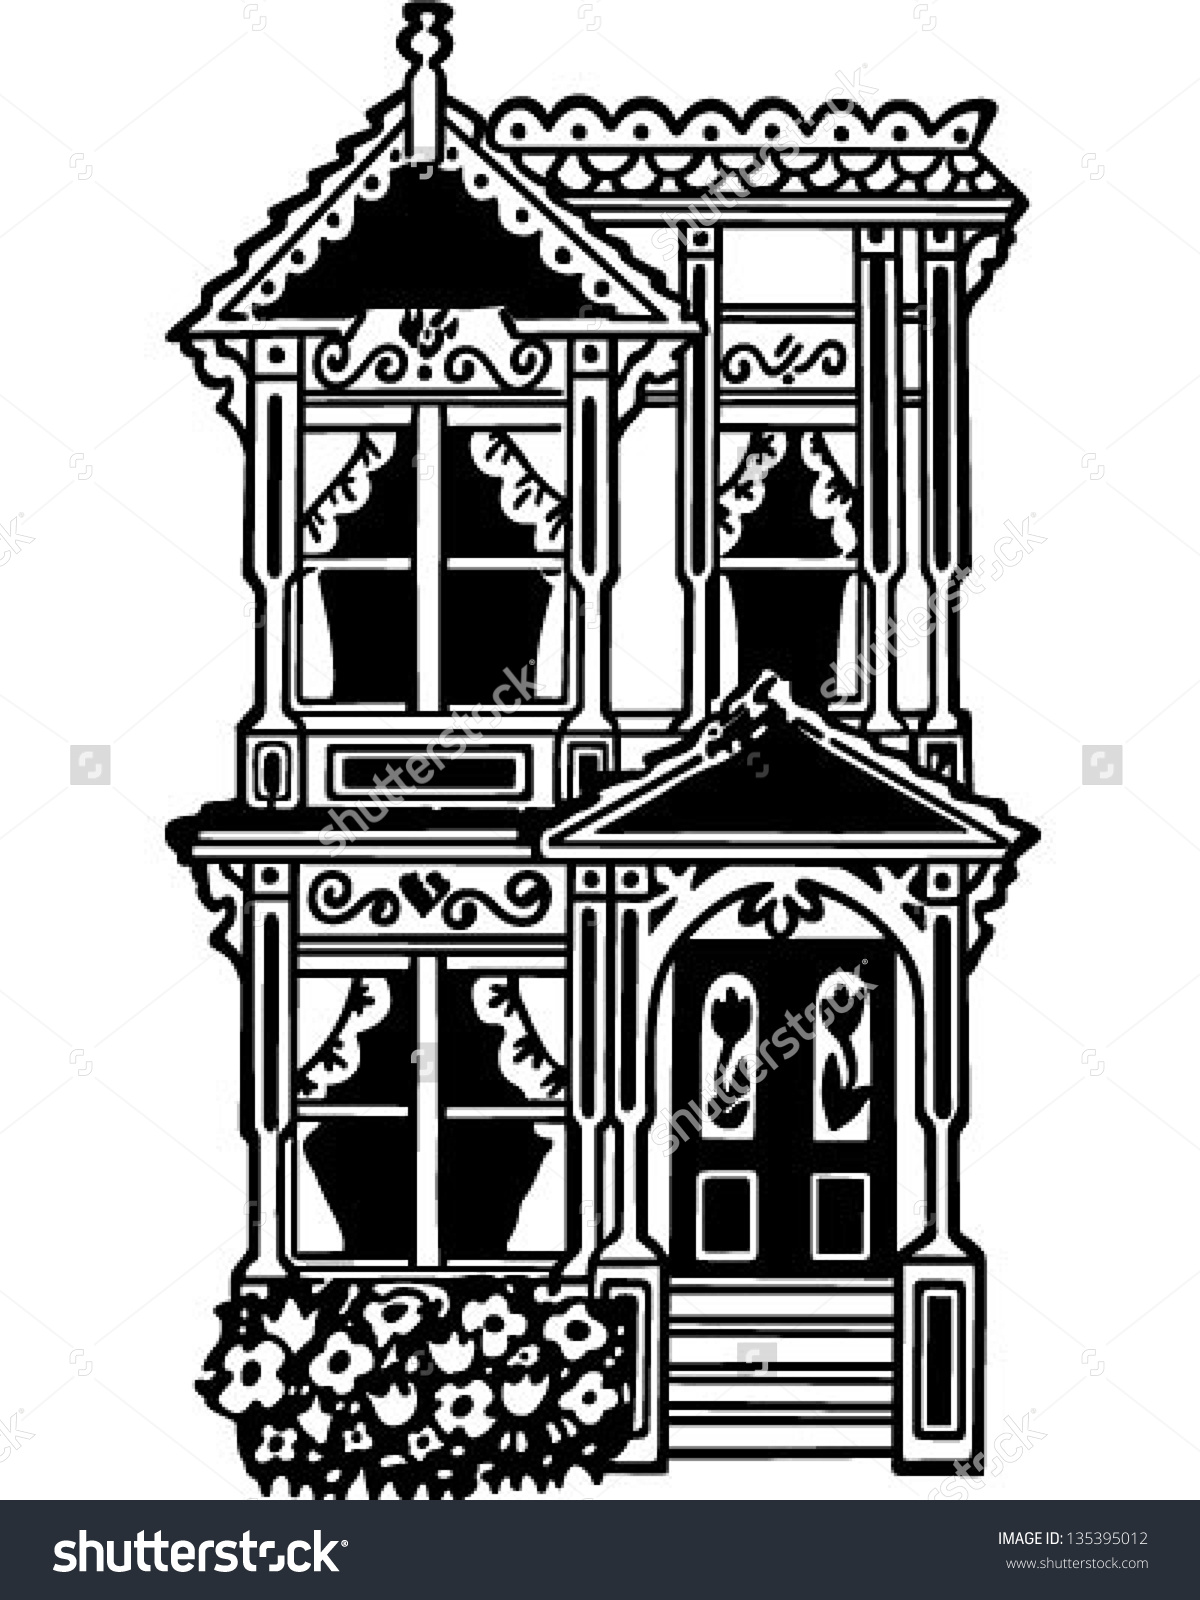 Victorian Row House Retro Clip Art Stock Vector 135395012.